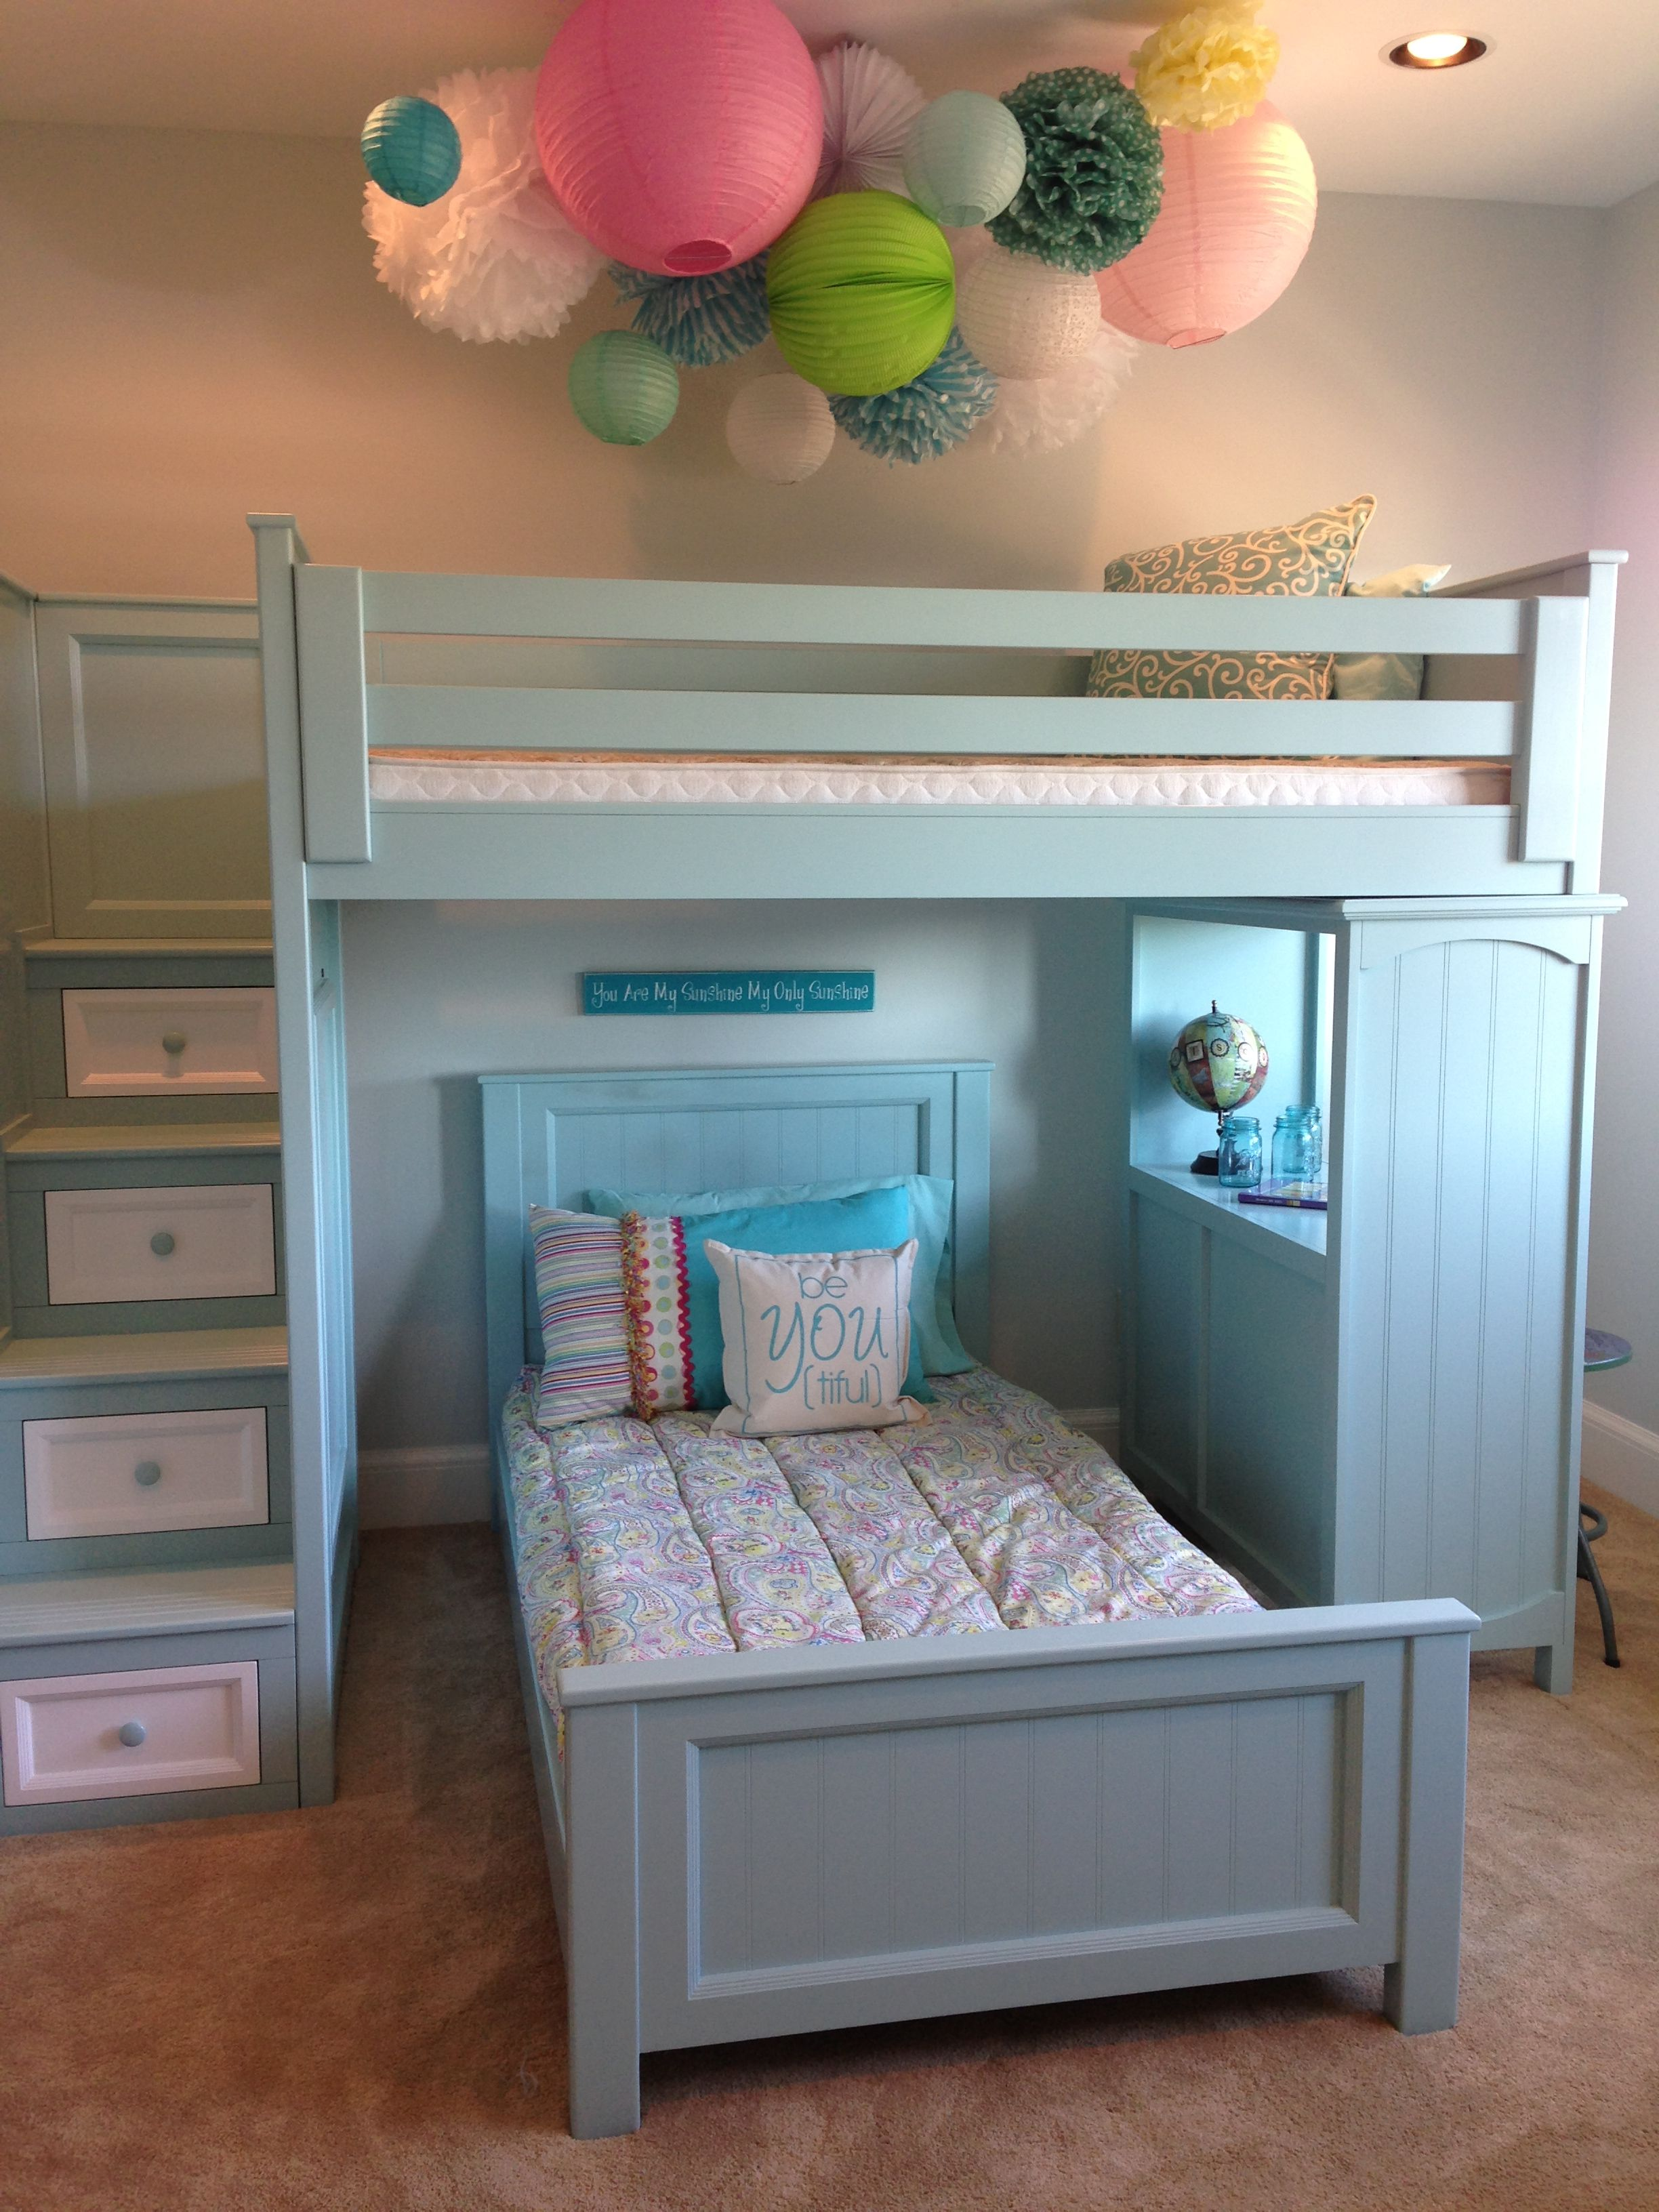 This Sydney Bunk Bed Would Be So Cute For A Girls Room Great